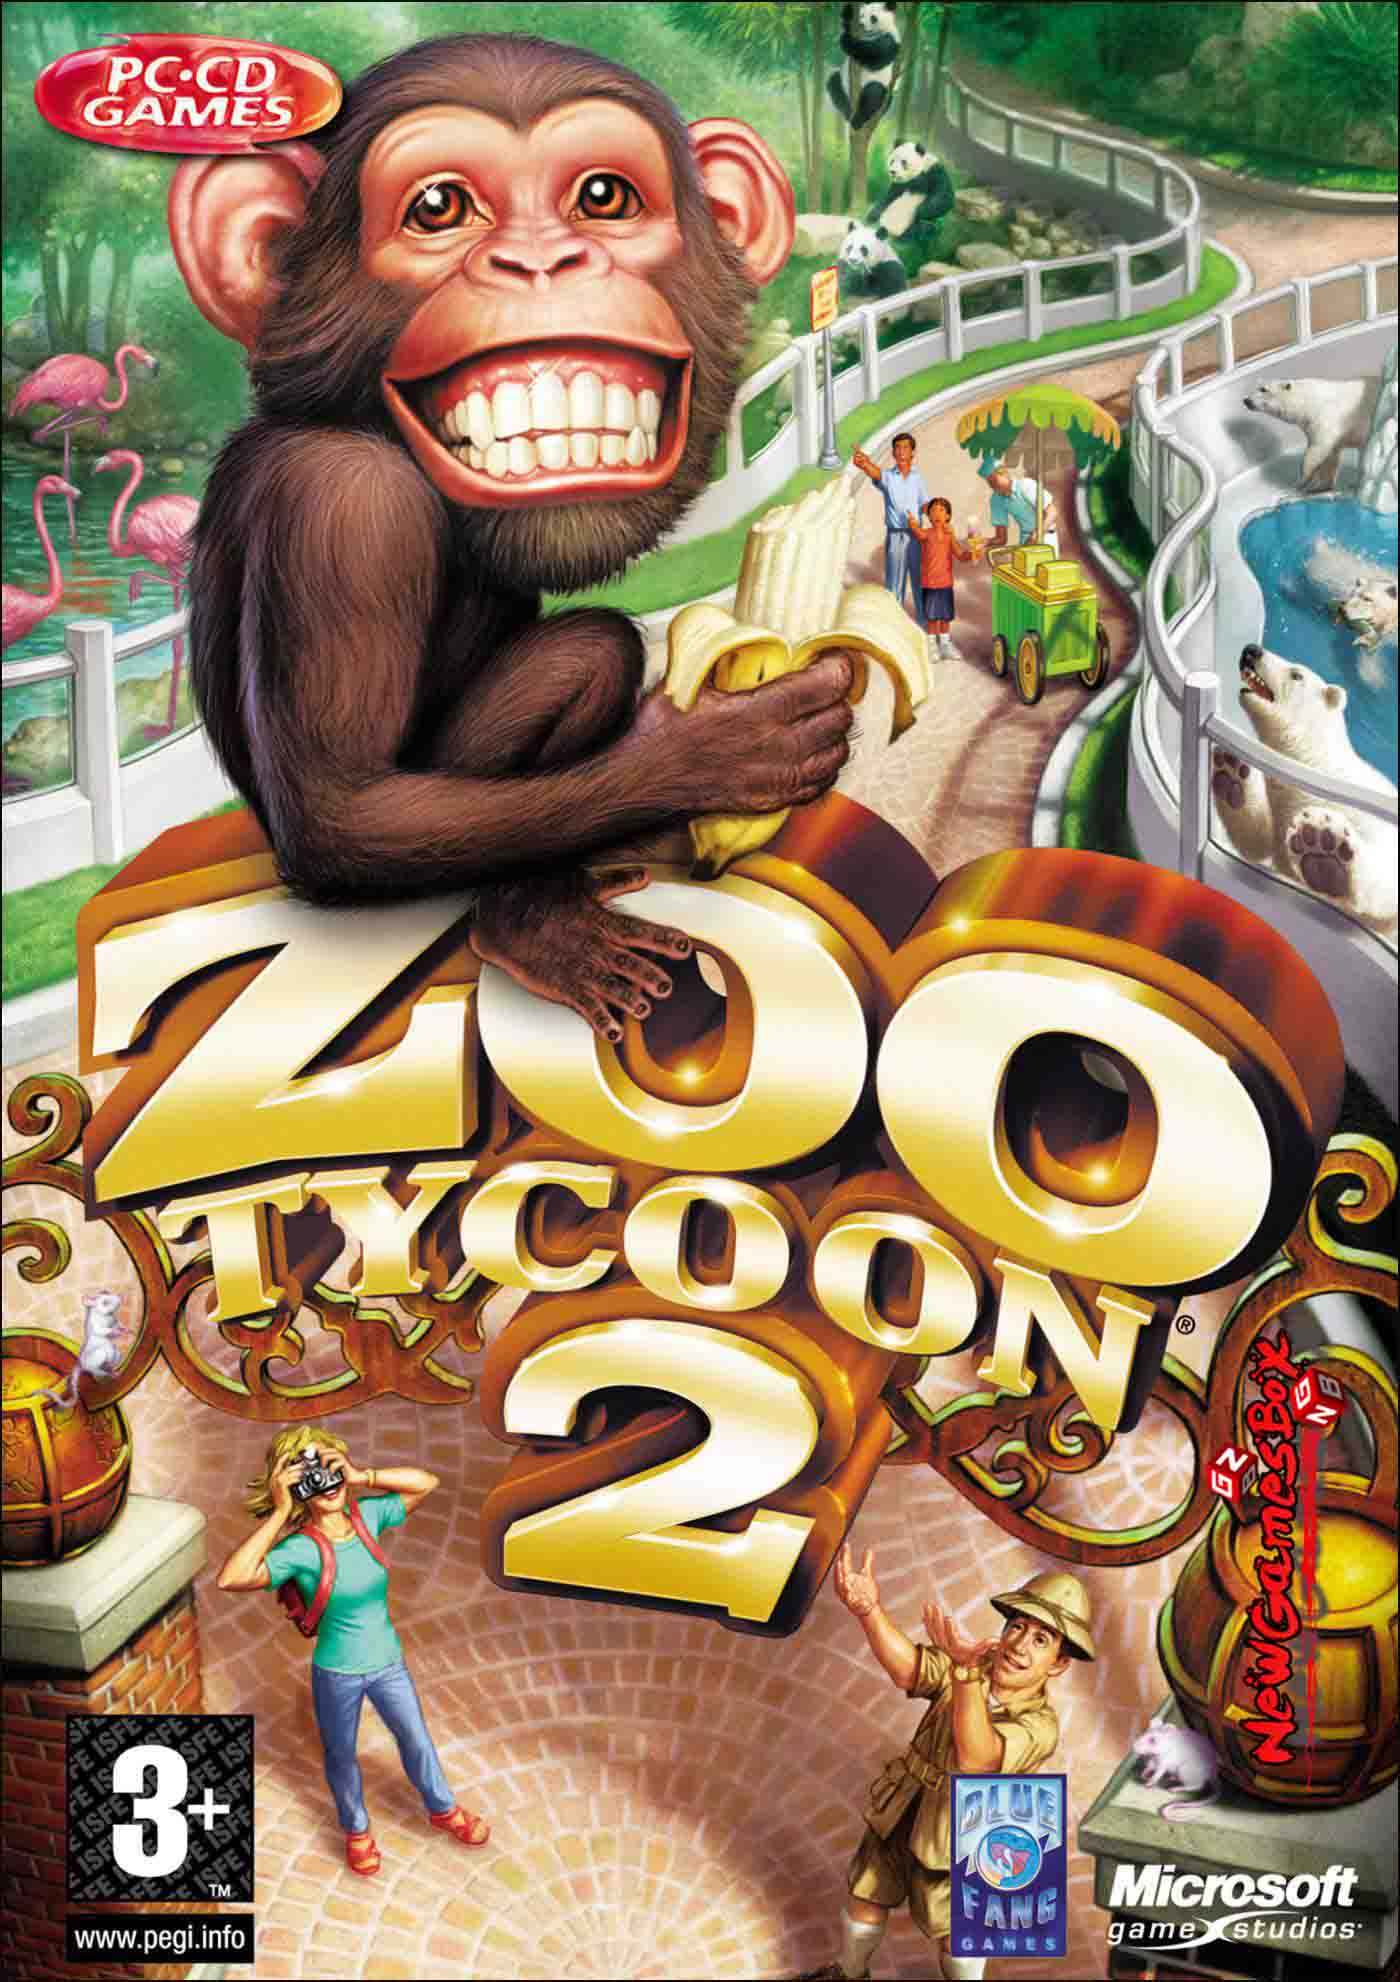 Zoo tycoon 2 jurassic park pack+download links!! Youtube.